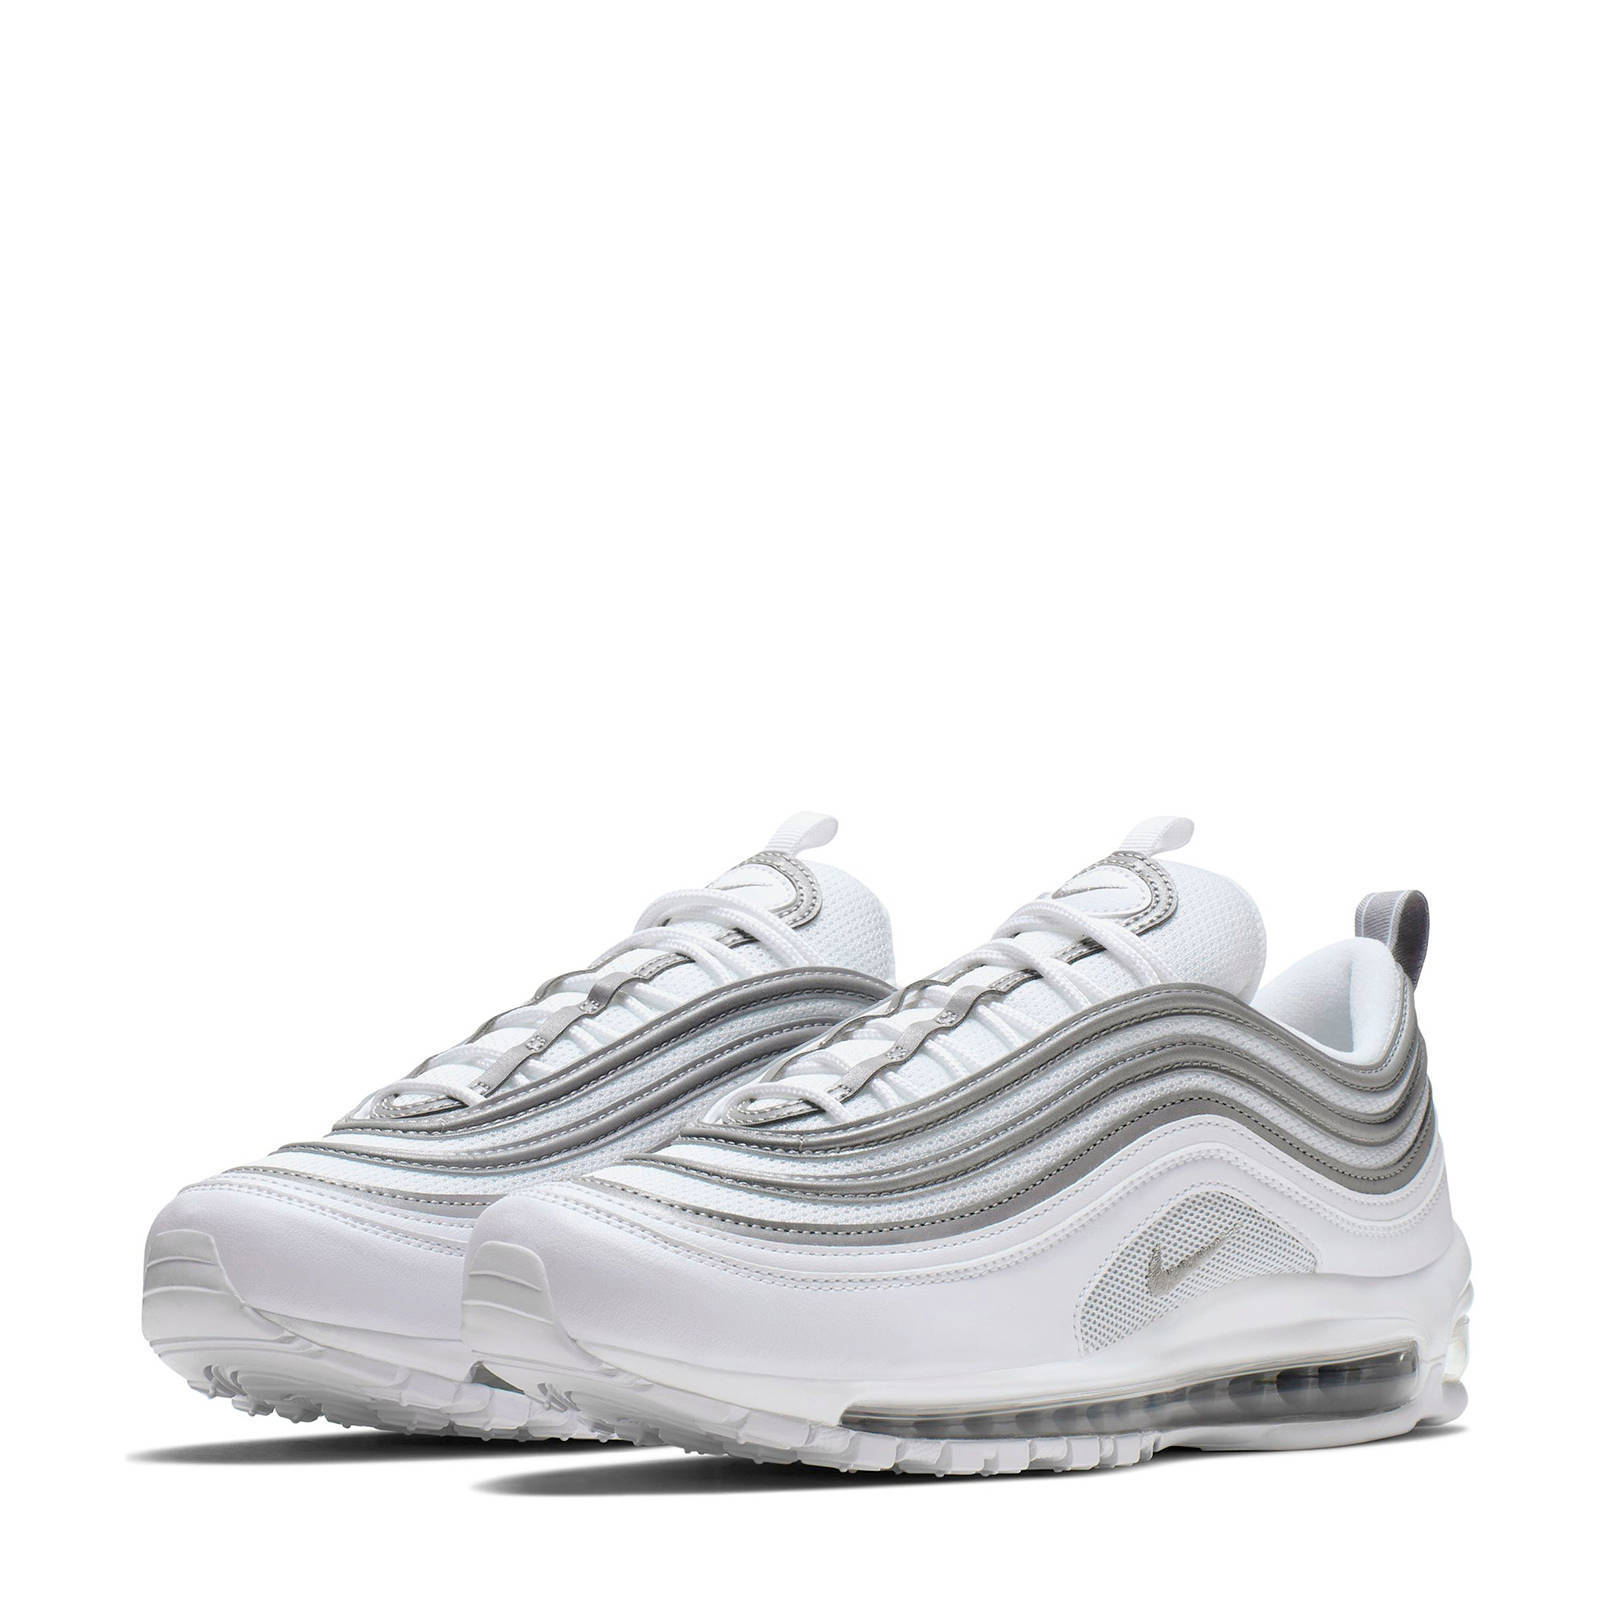 nike air max 97 wasmachine